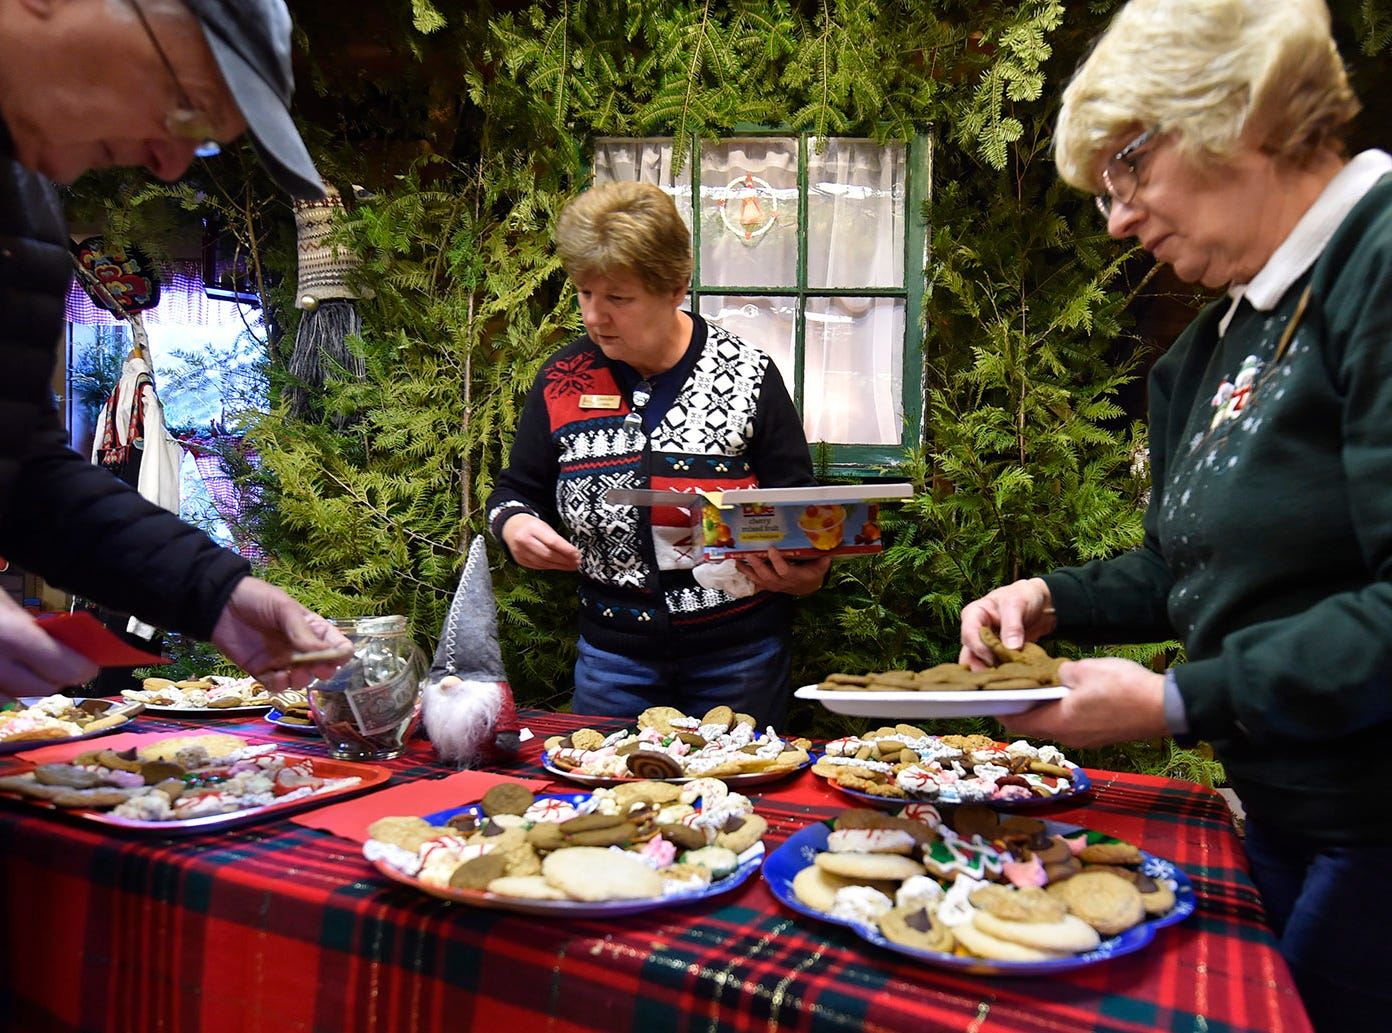 Volunteers kept the table stocked with homemade cookies during Natural Christmas at The Ridges Sanctuary, Baileys Harbor, on Saturday, Dec. 8, 2018. Tina M. Gohr/USA TODAY NETWORK-Wisconsin